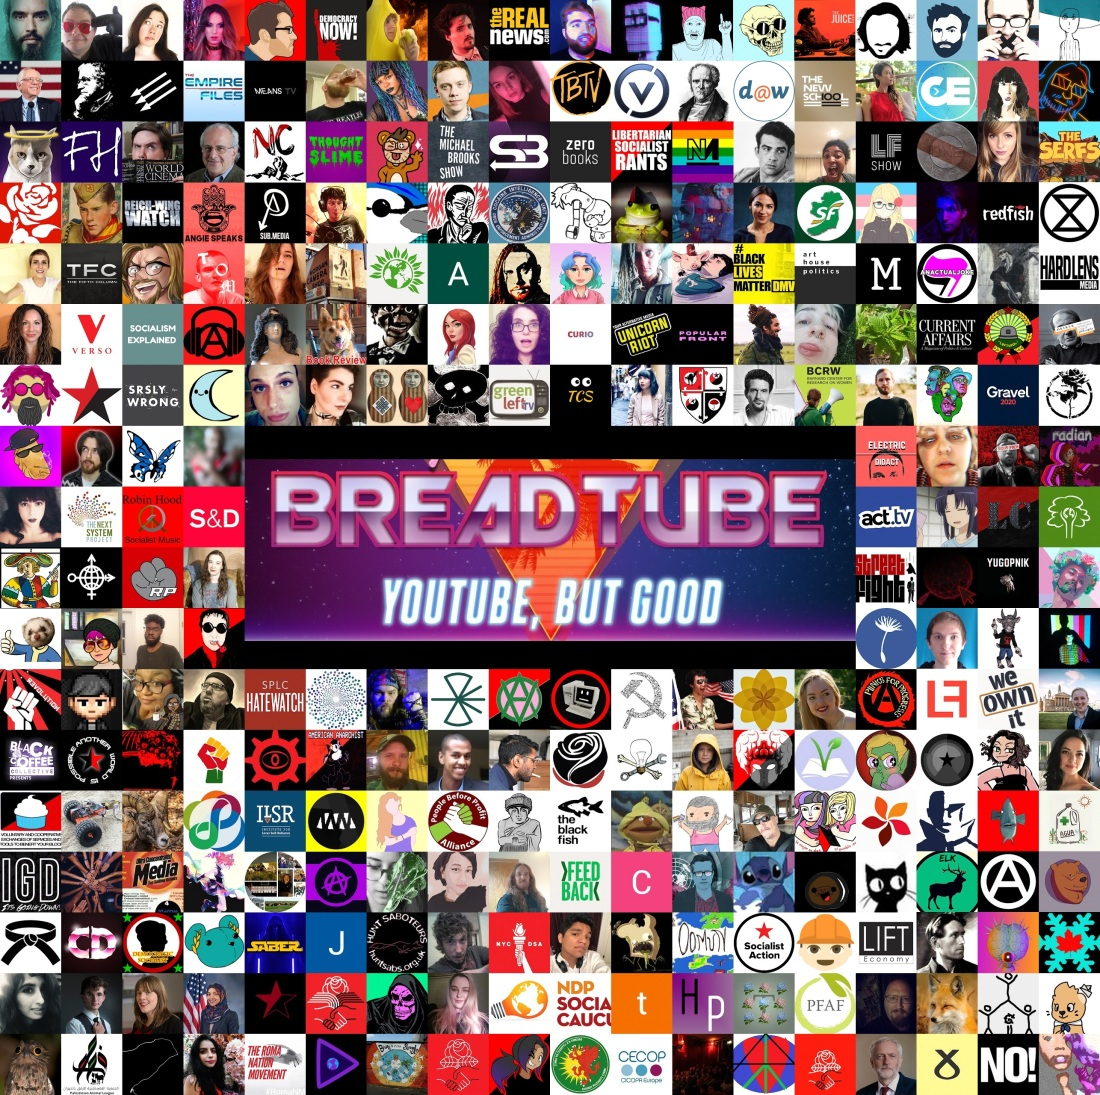 breadtube collage